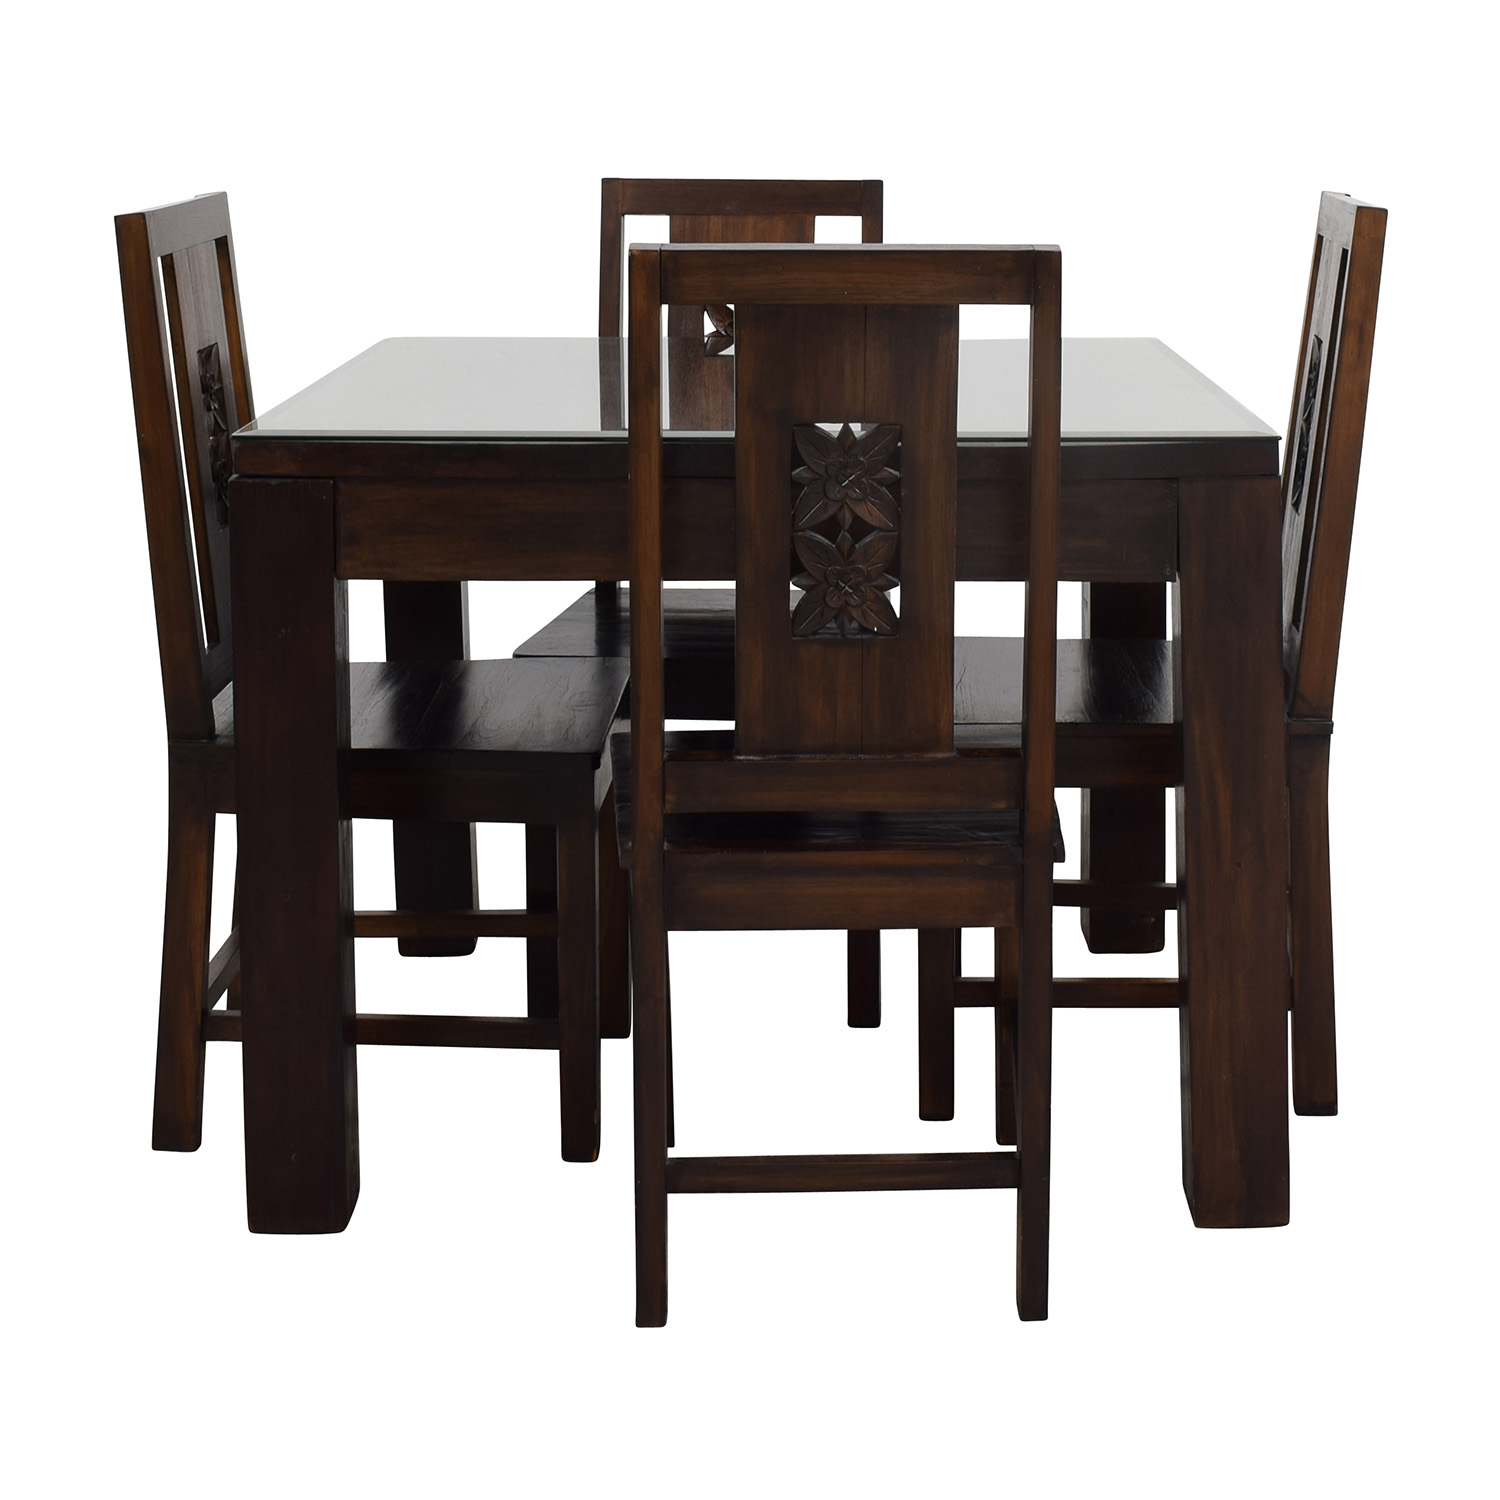 Balinese Teak Dining Table Set Dining Sets